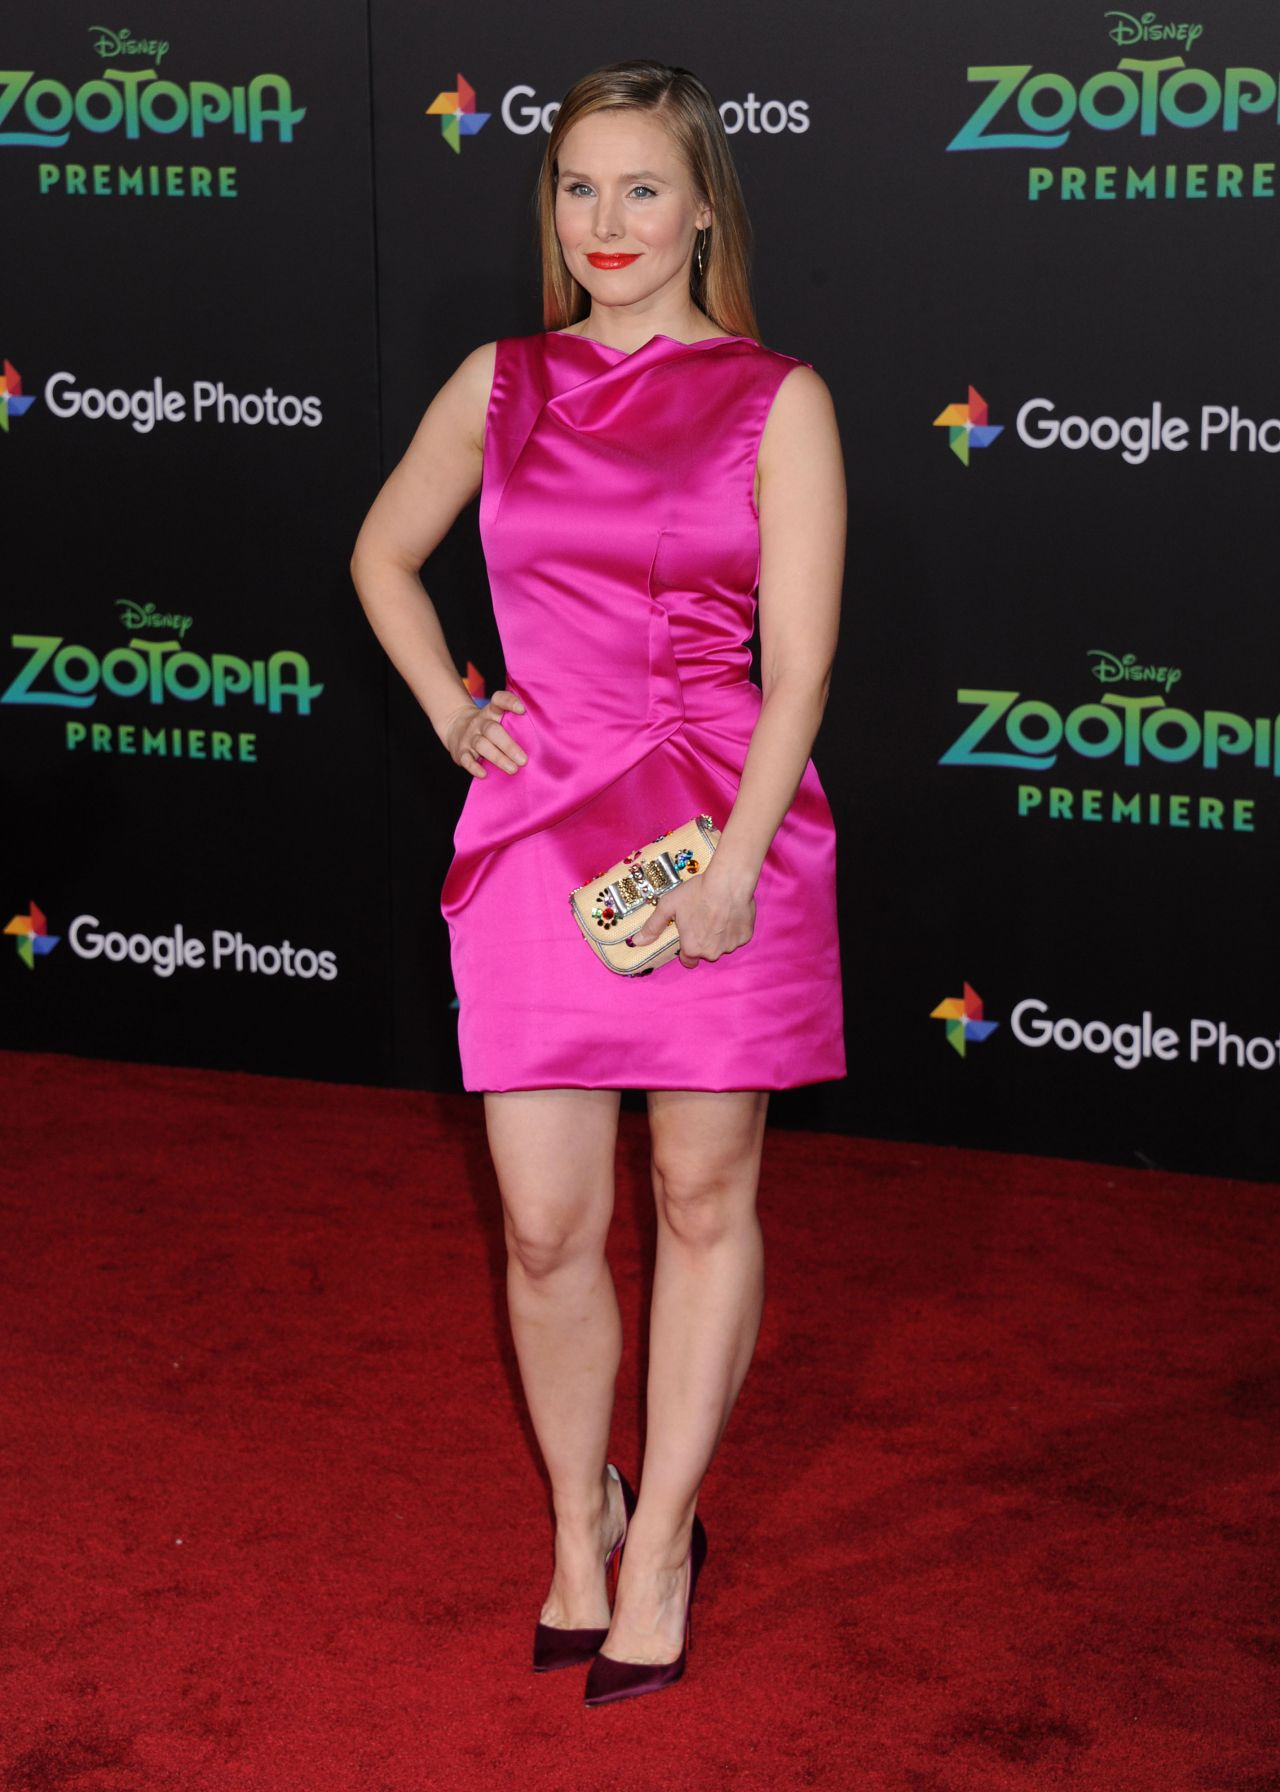 kristen-bell-zootopia-premiere-in-hollywood-ca-1